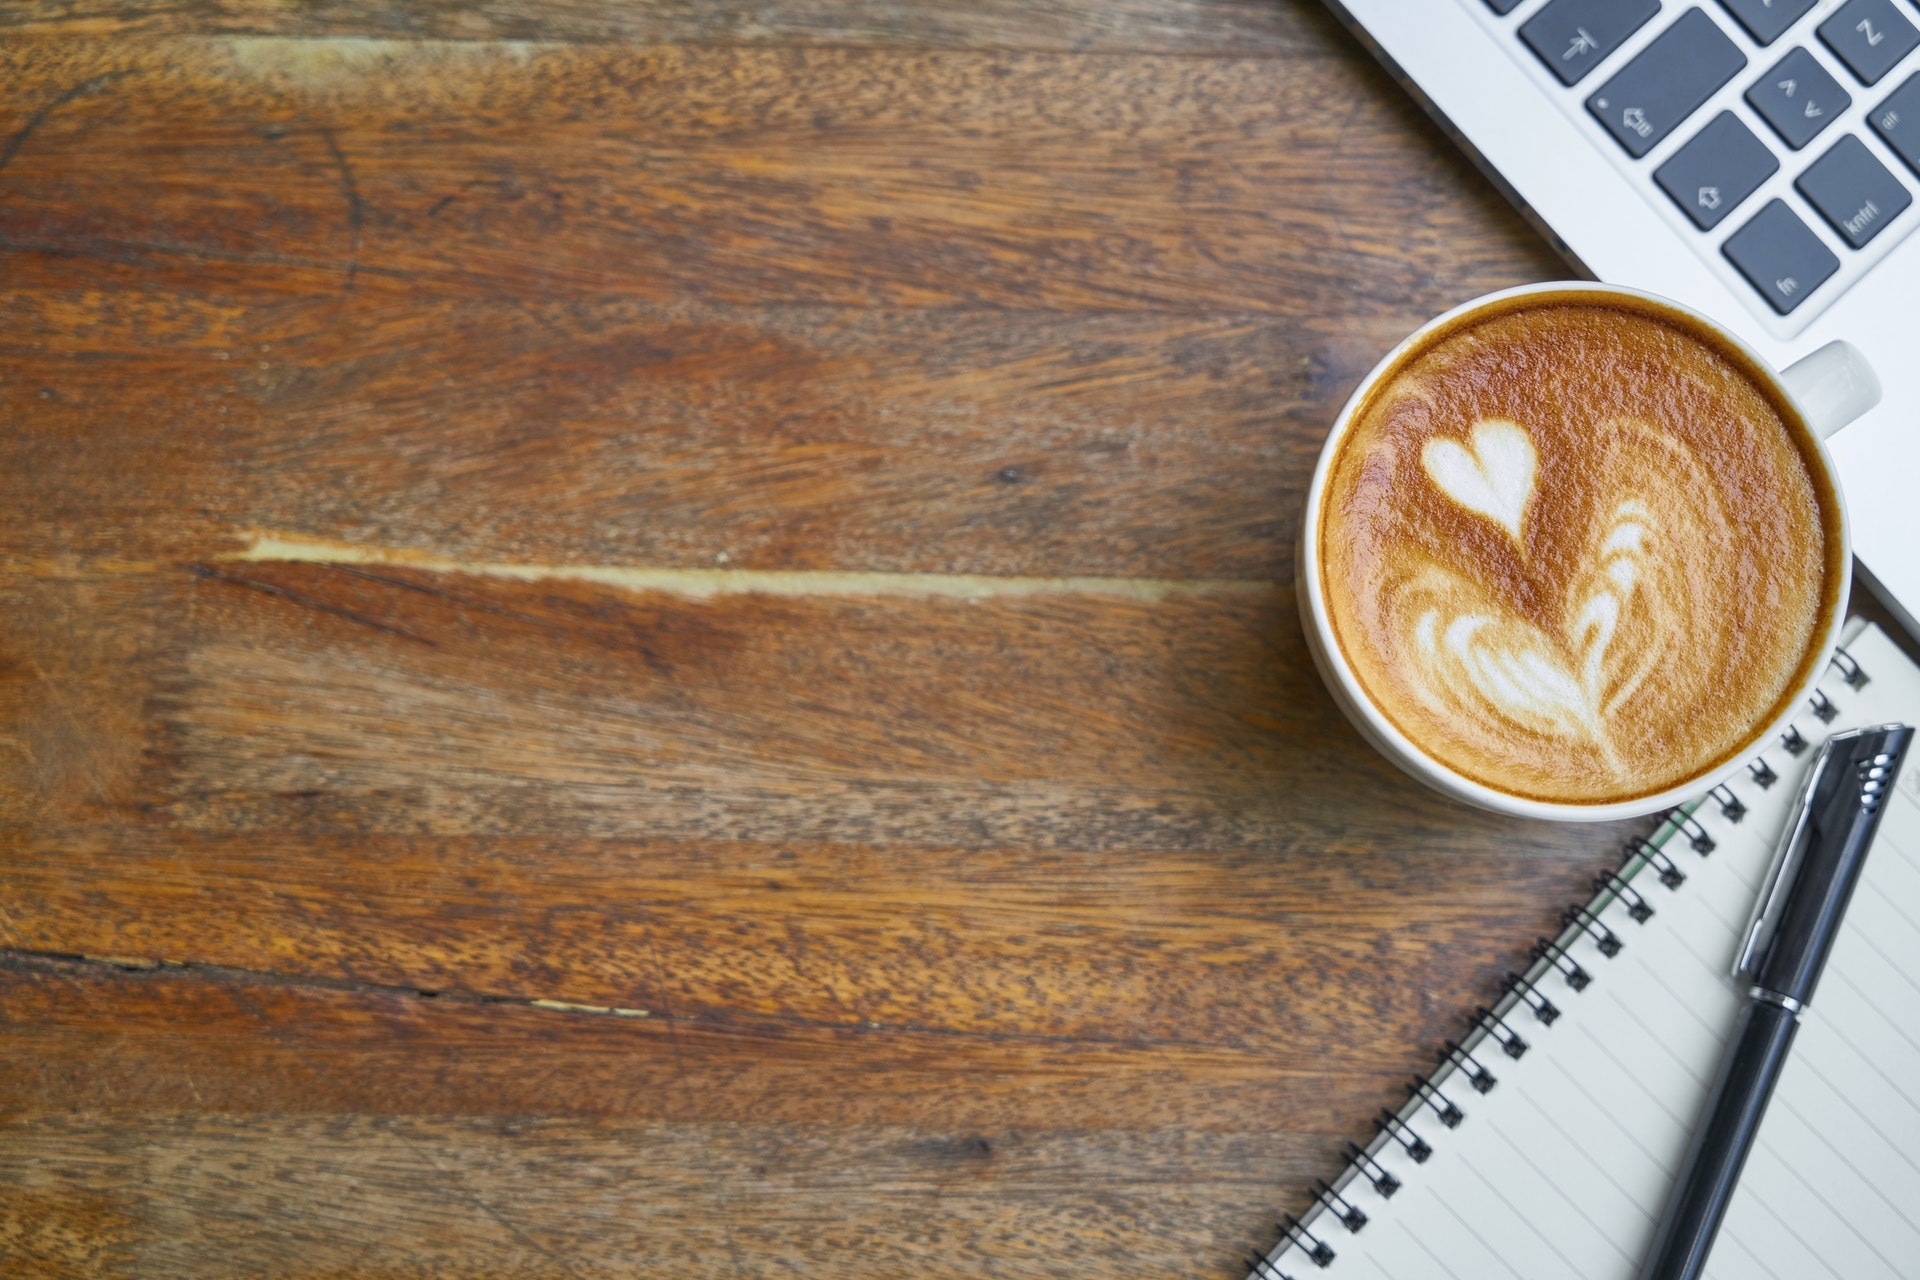 Cup of coffee next to laptop and notepad